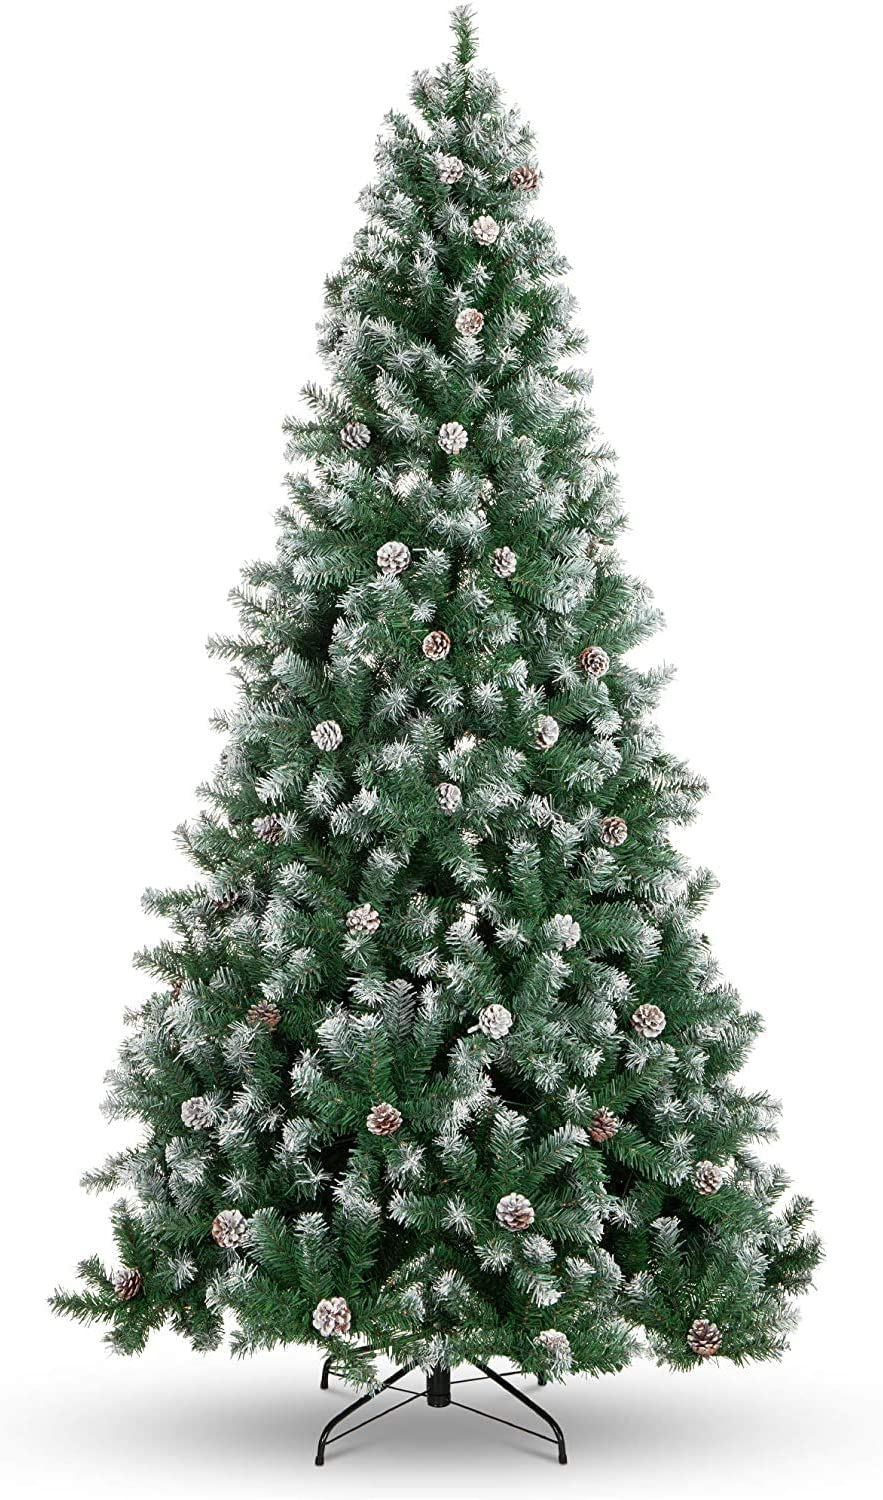 Strong Camel 7.5' Green Max 48% OFF Snow Max 77% OFF Tipped with pinec Tree 42 Christmas